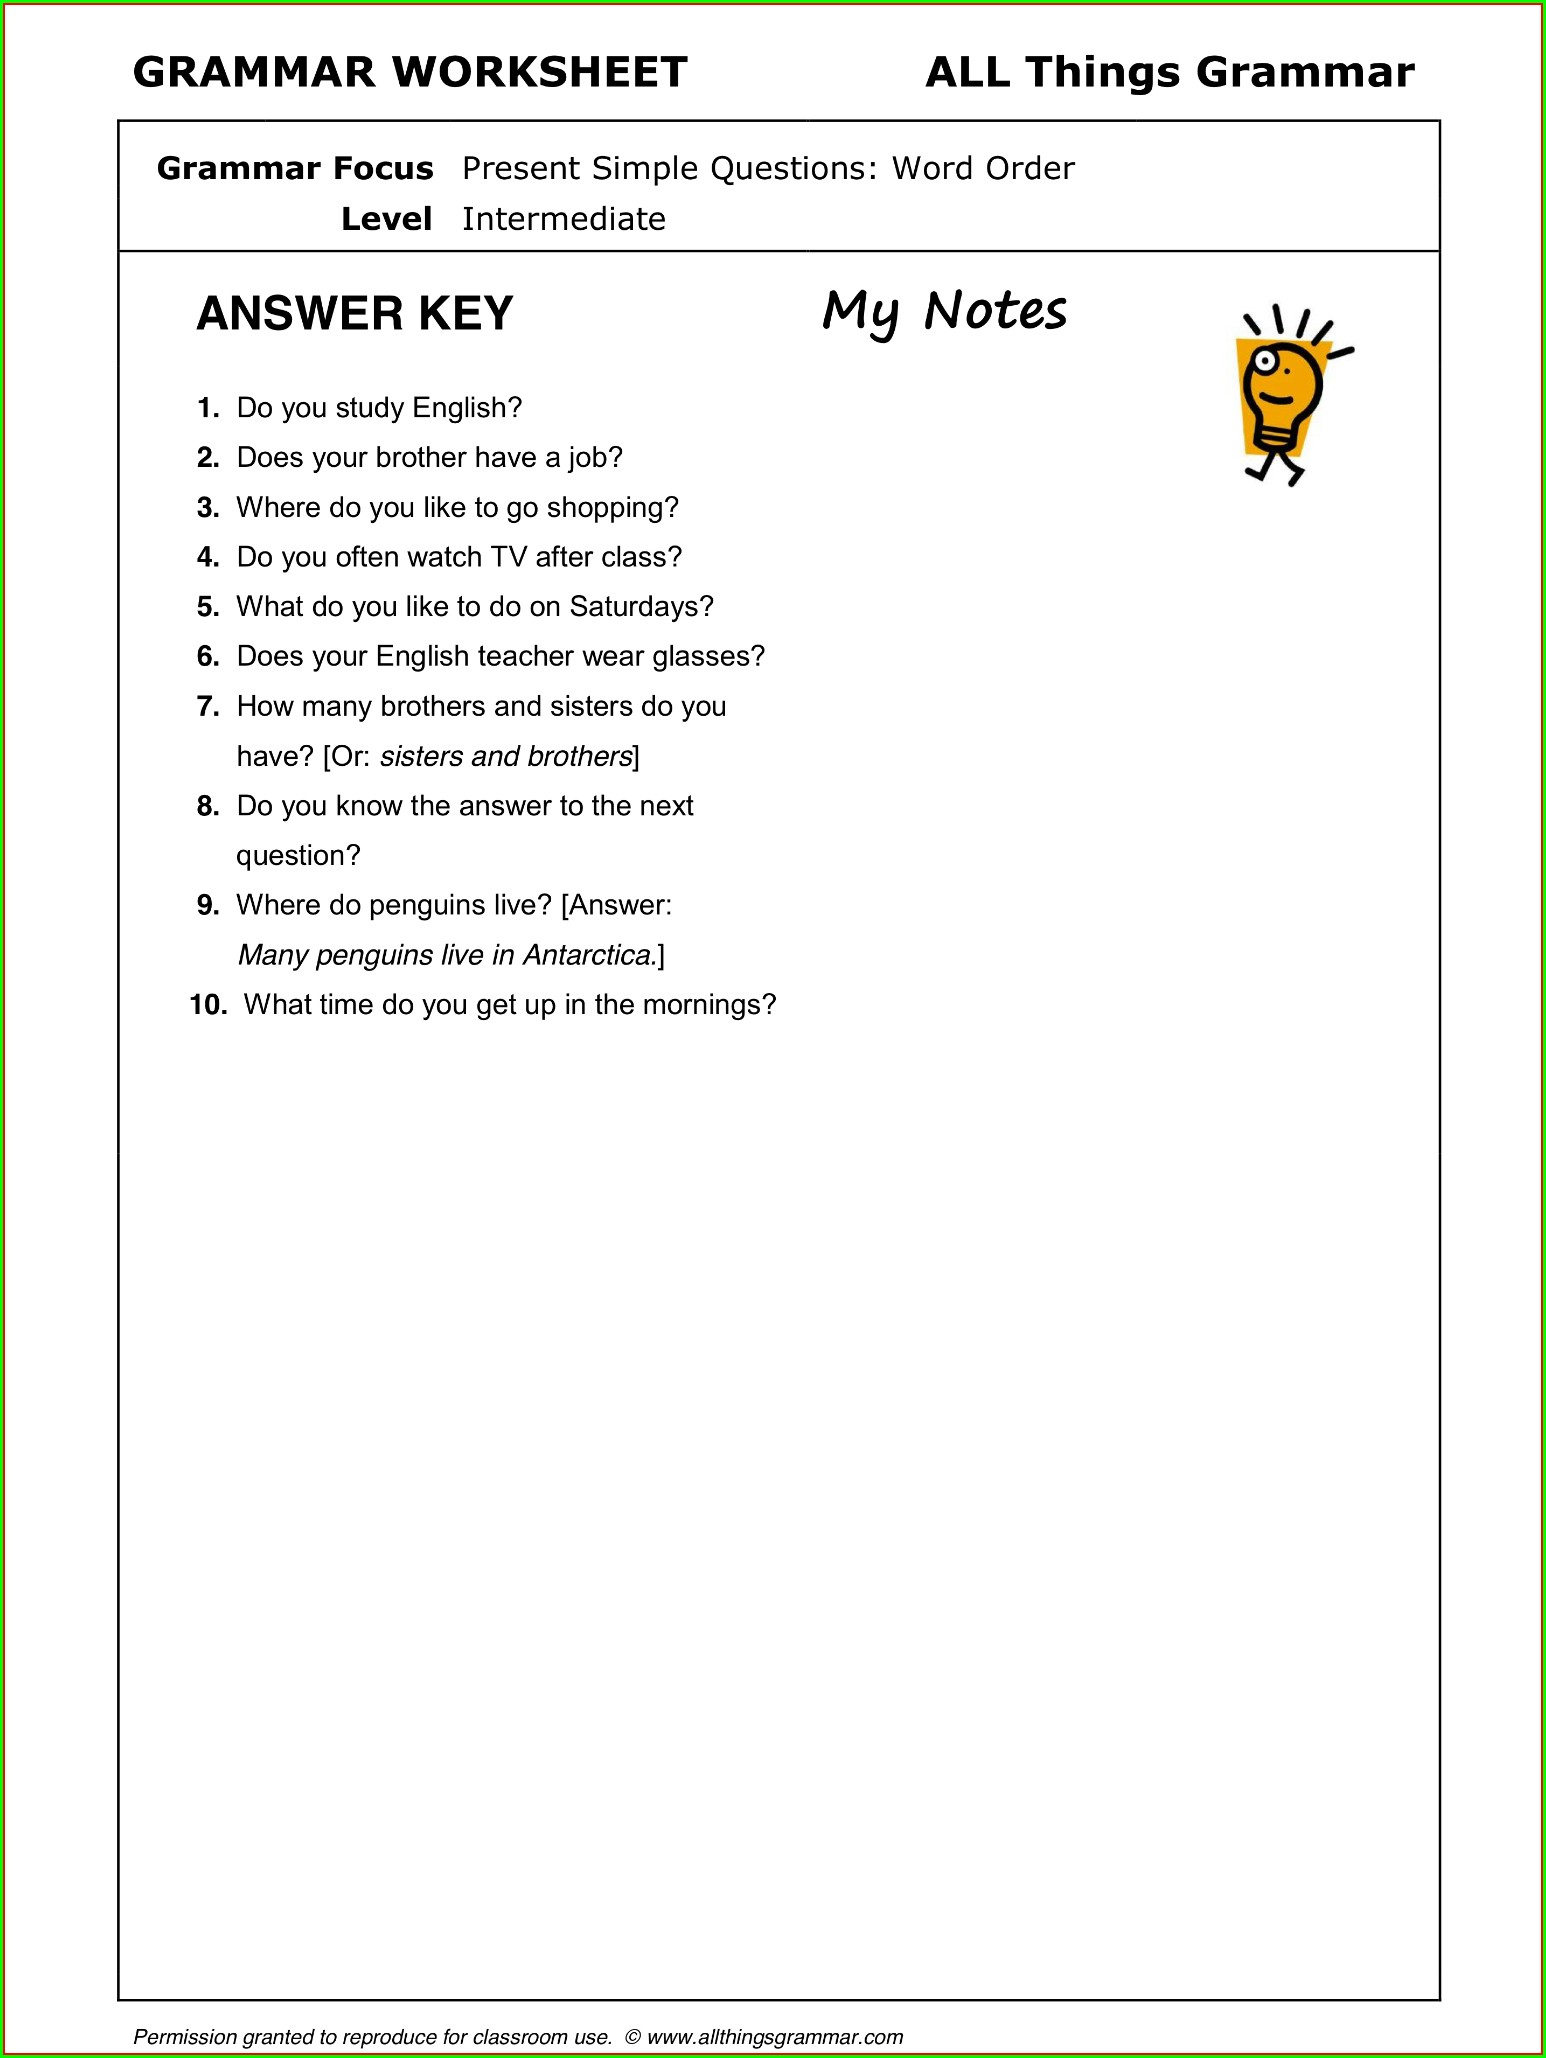 Grammar Worksheet Present Simple Questions Word Order